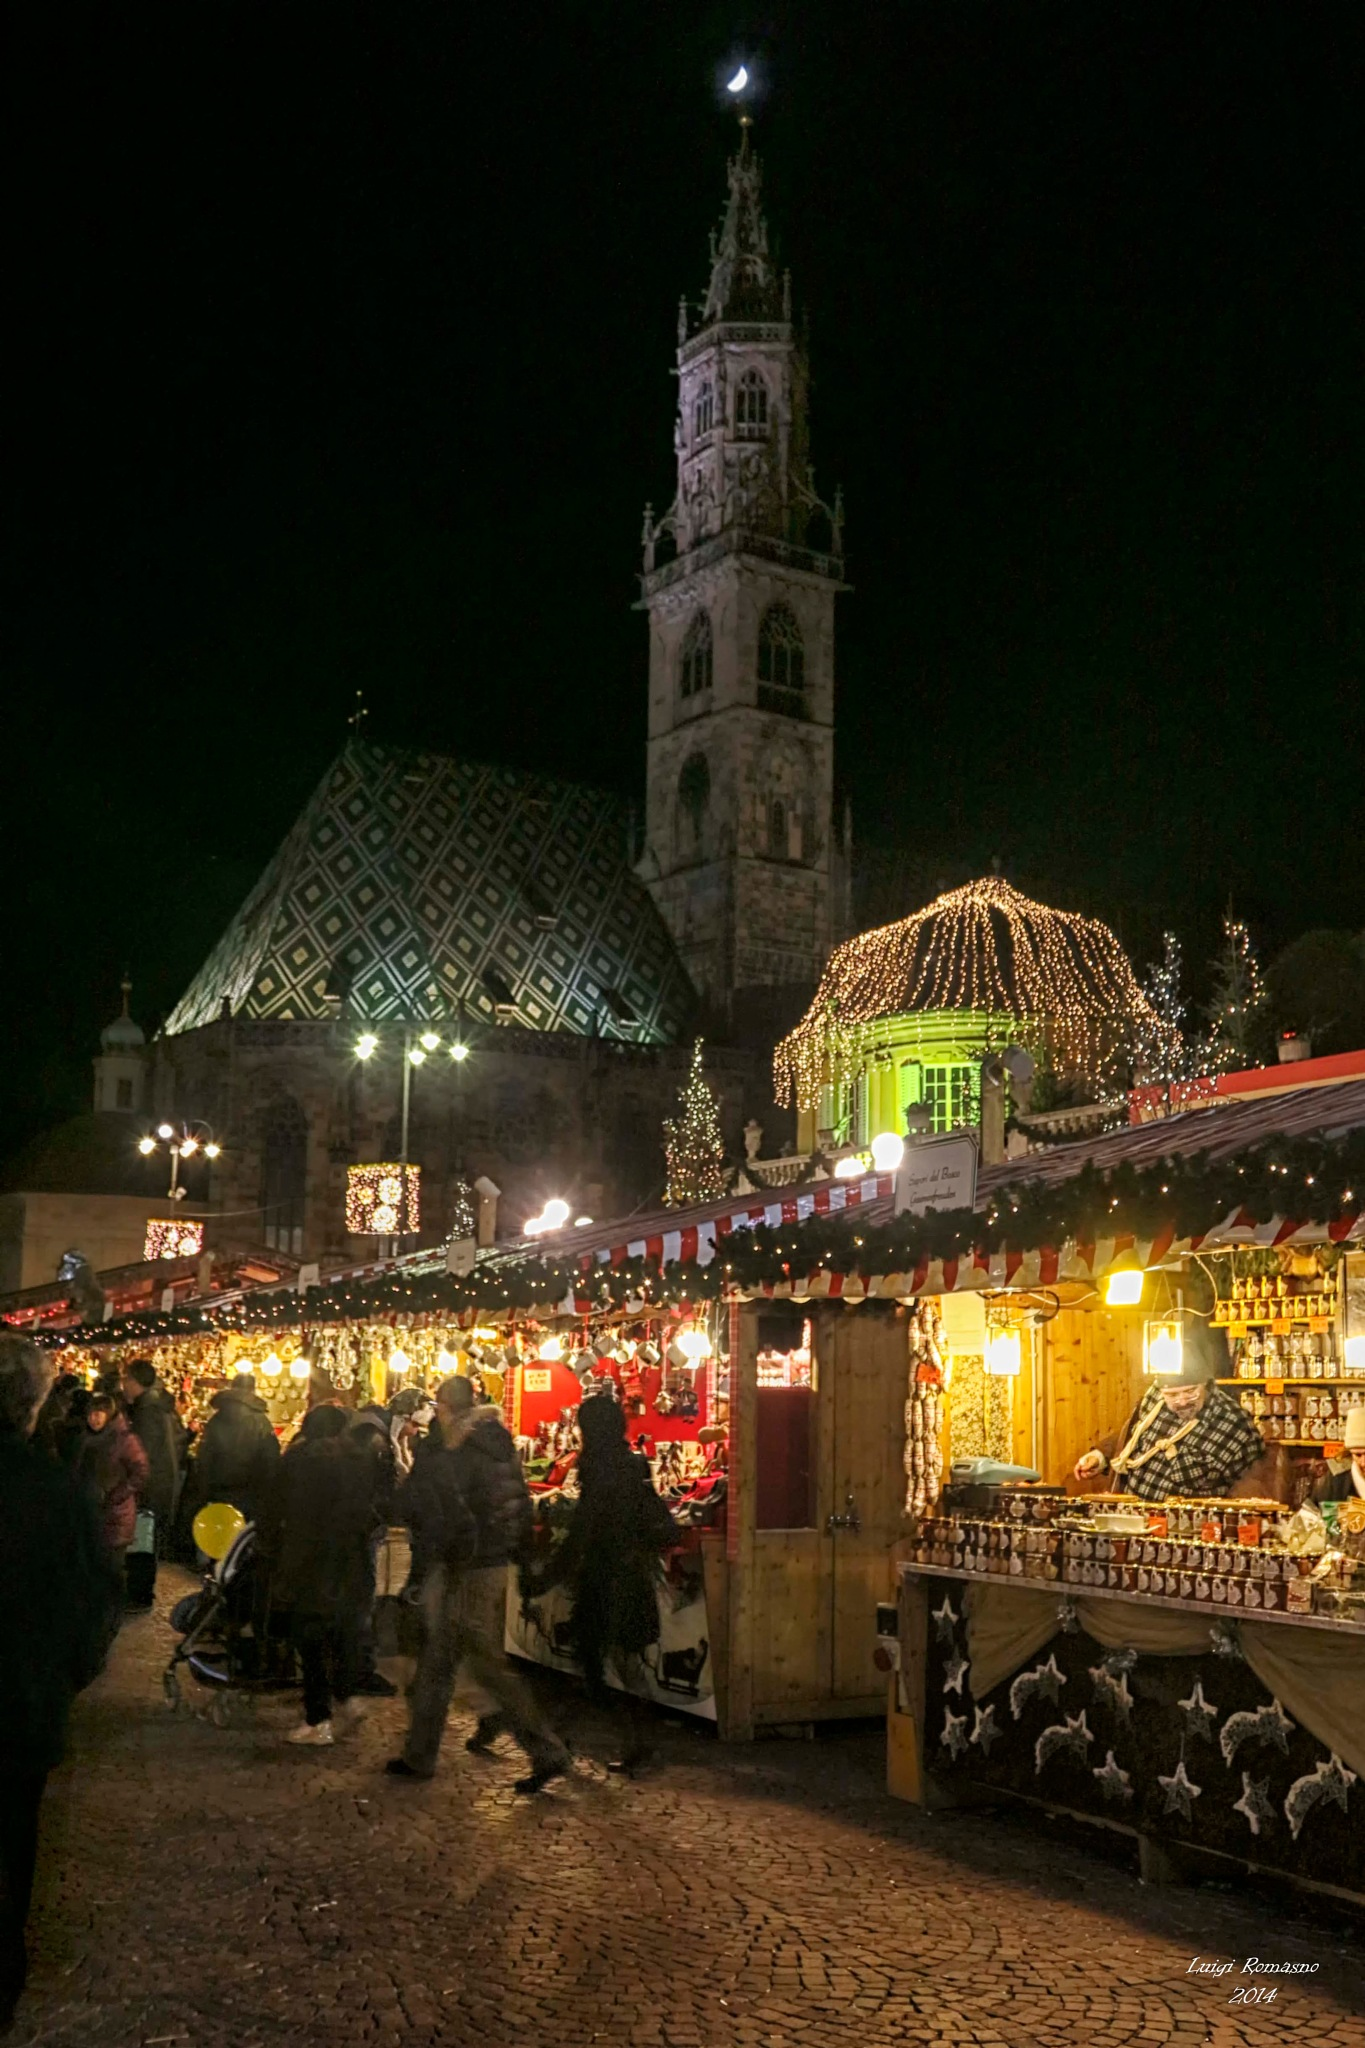 The moon, the cathedral and the Christmas market by Luigi Romano